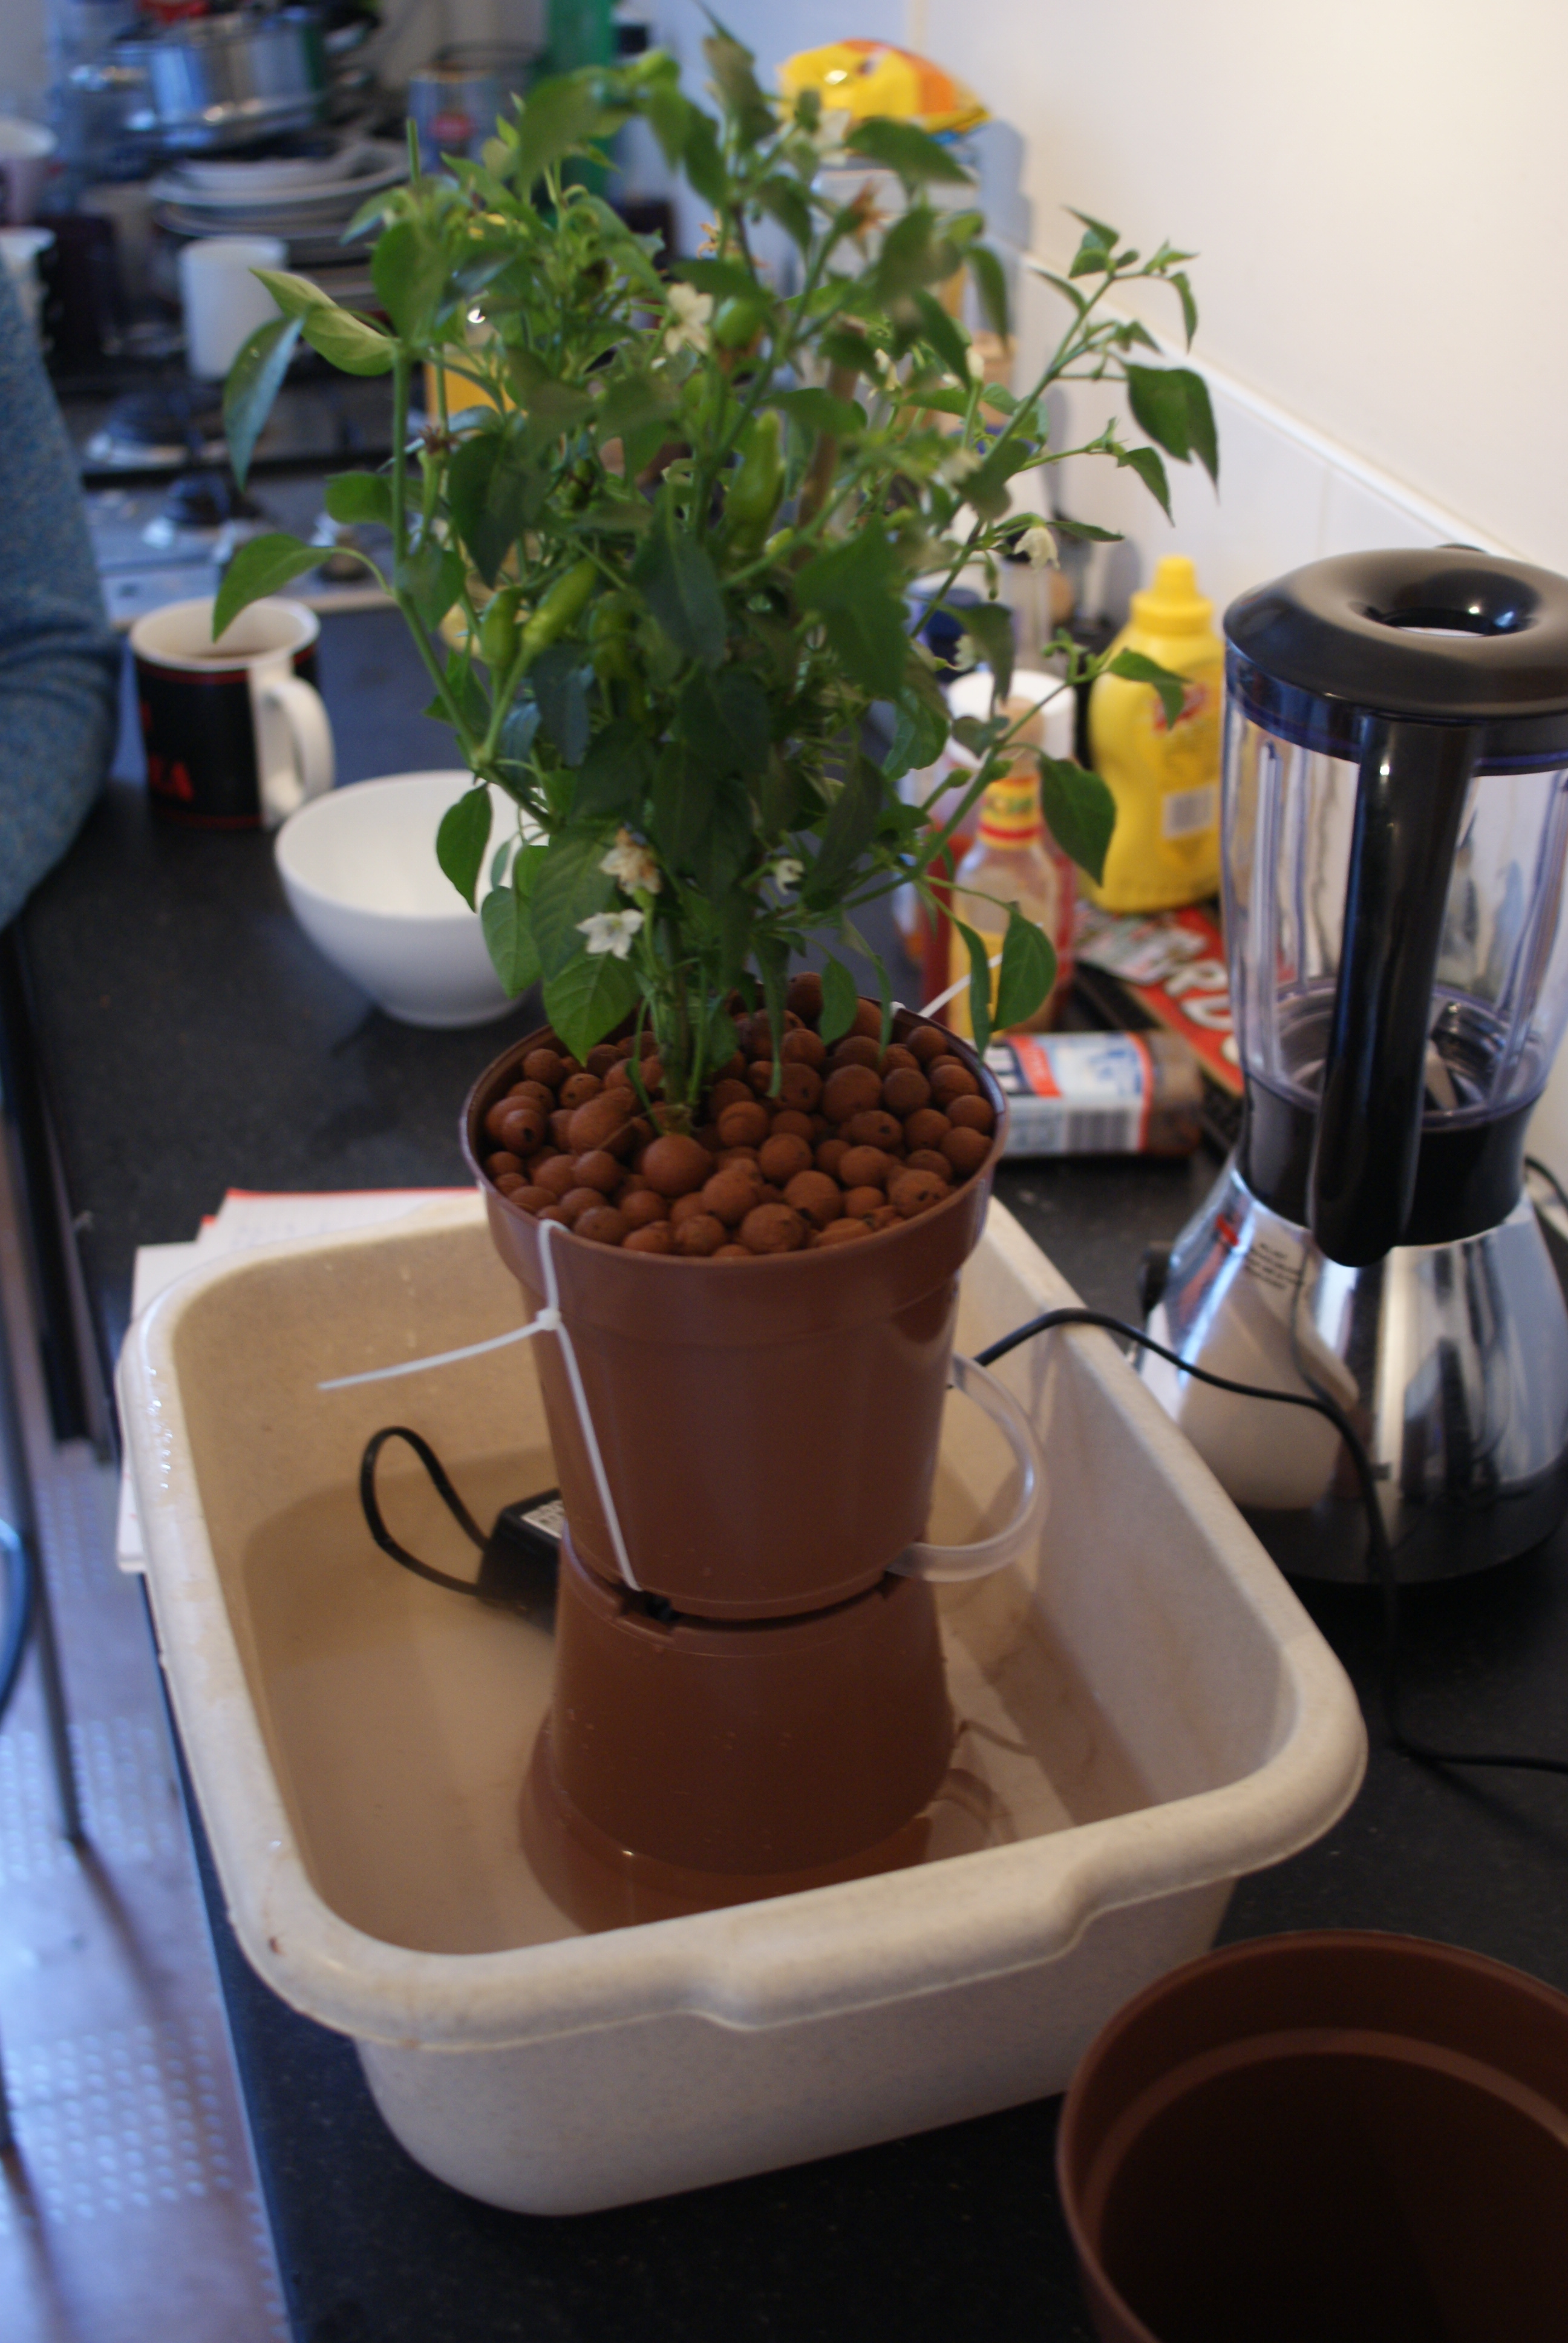 Hydroponic Drip Growing Starter Kit (featuring Chillies)